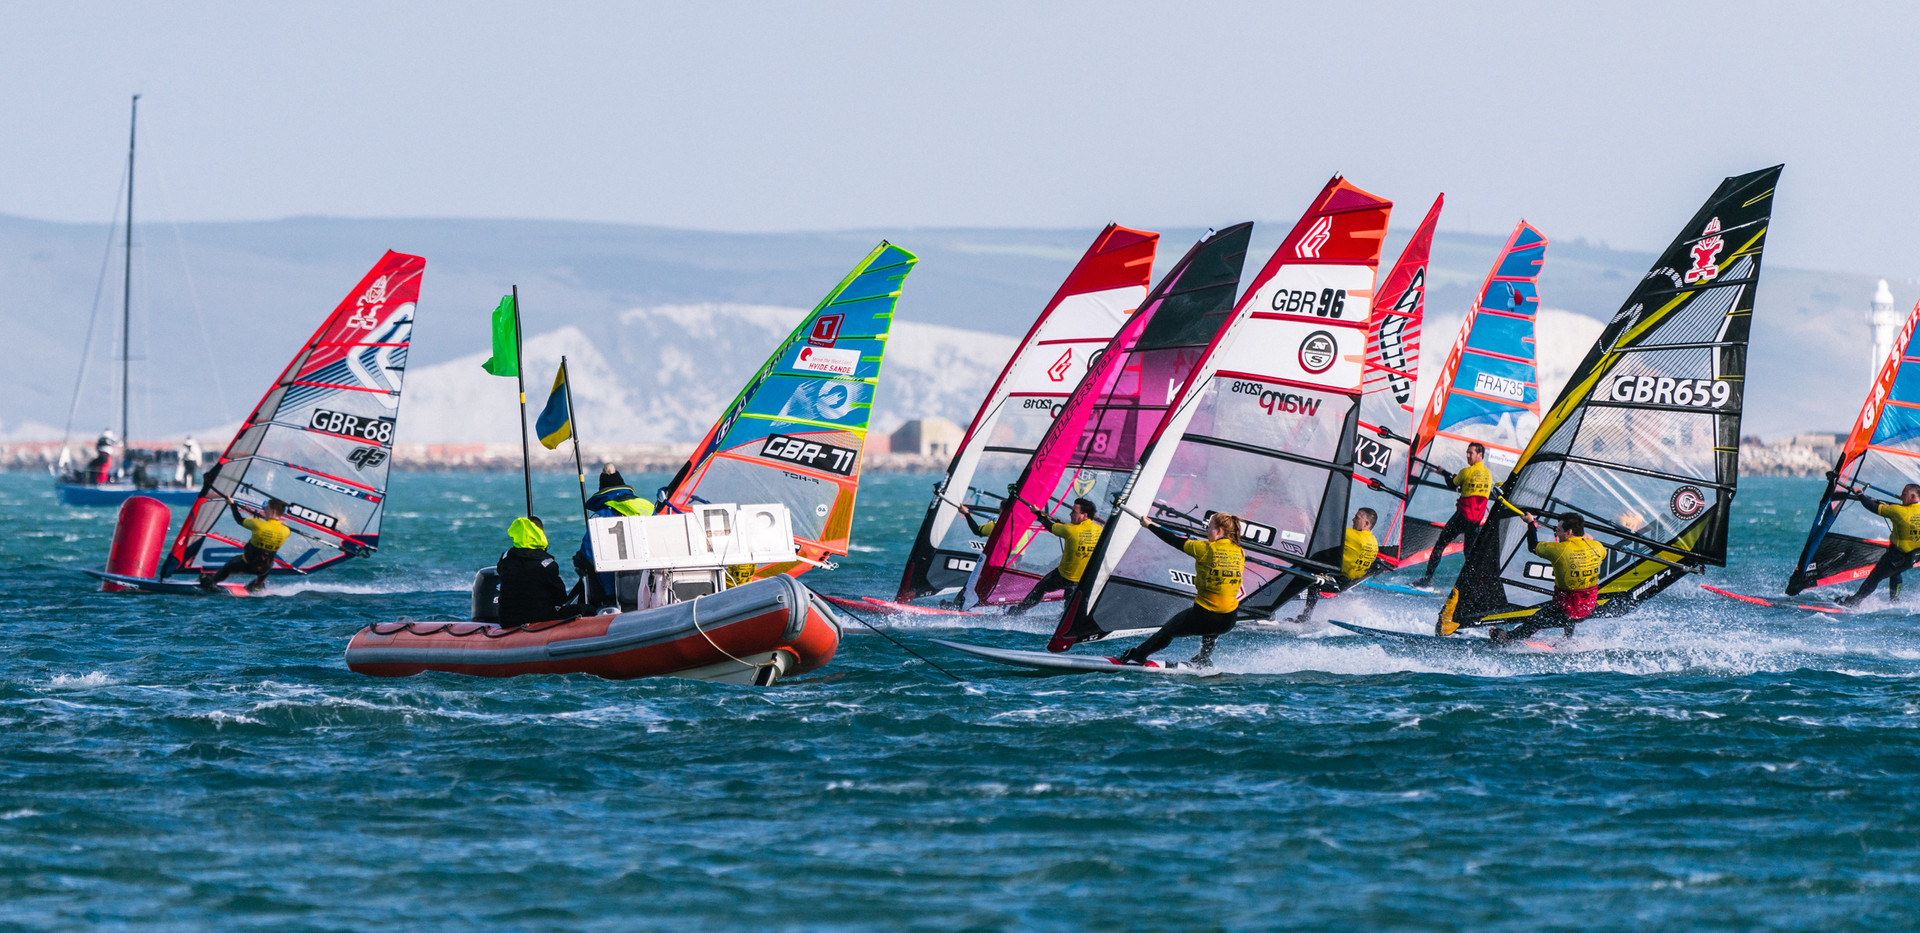 Scott nails his start and James with work to do in a Weymouth heat - Credit: Andy Stallman